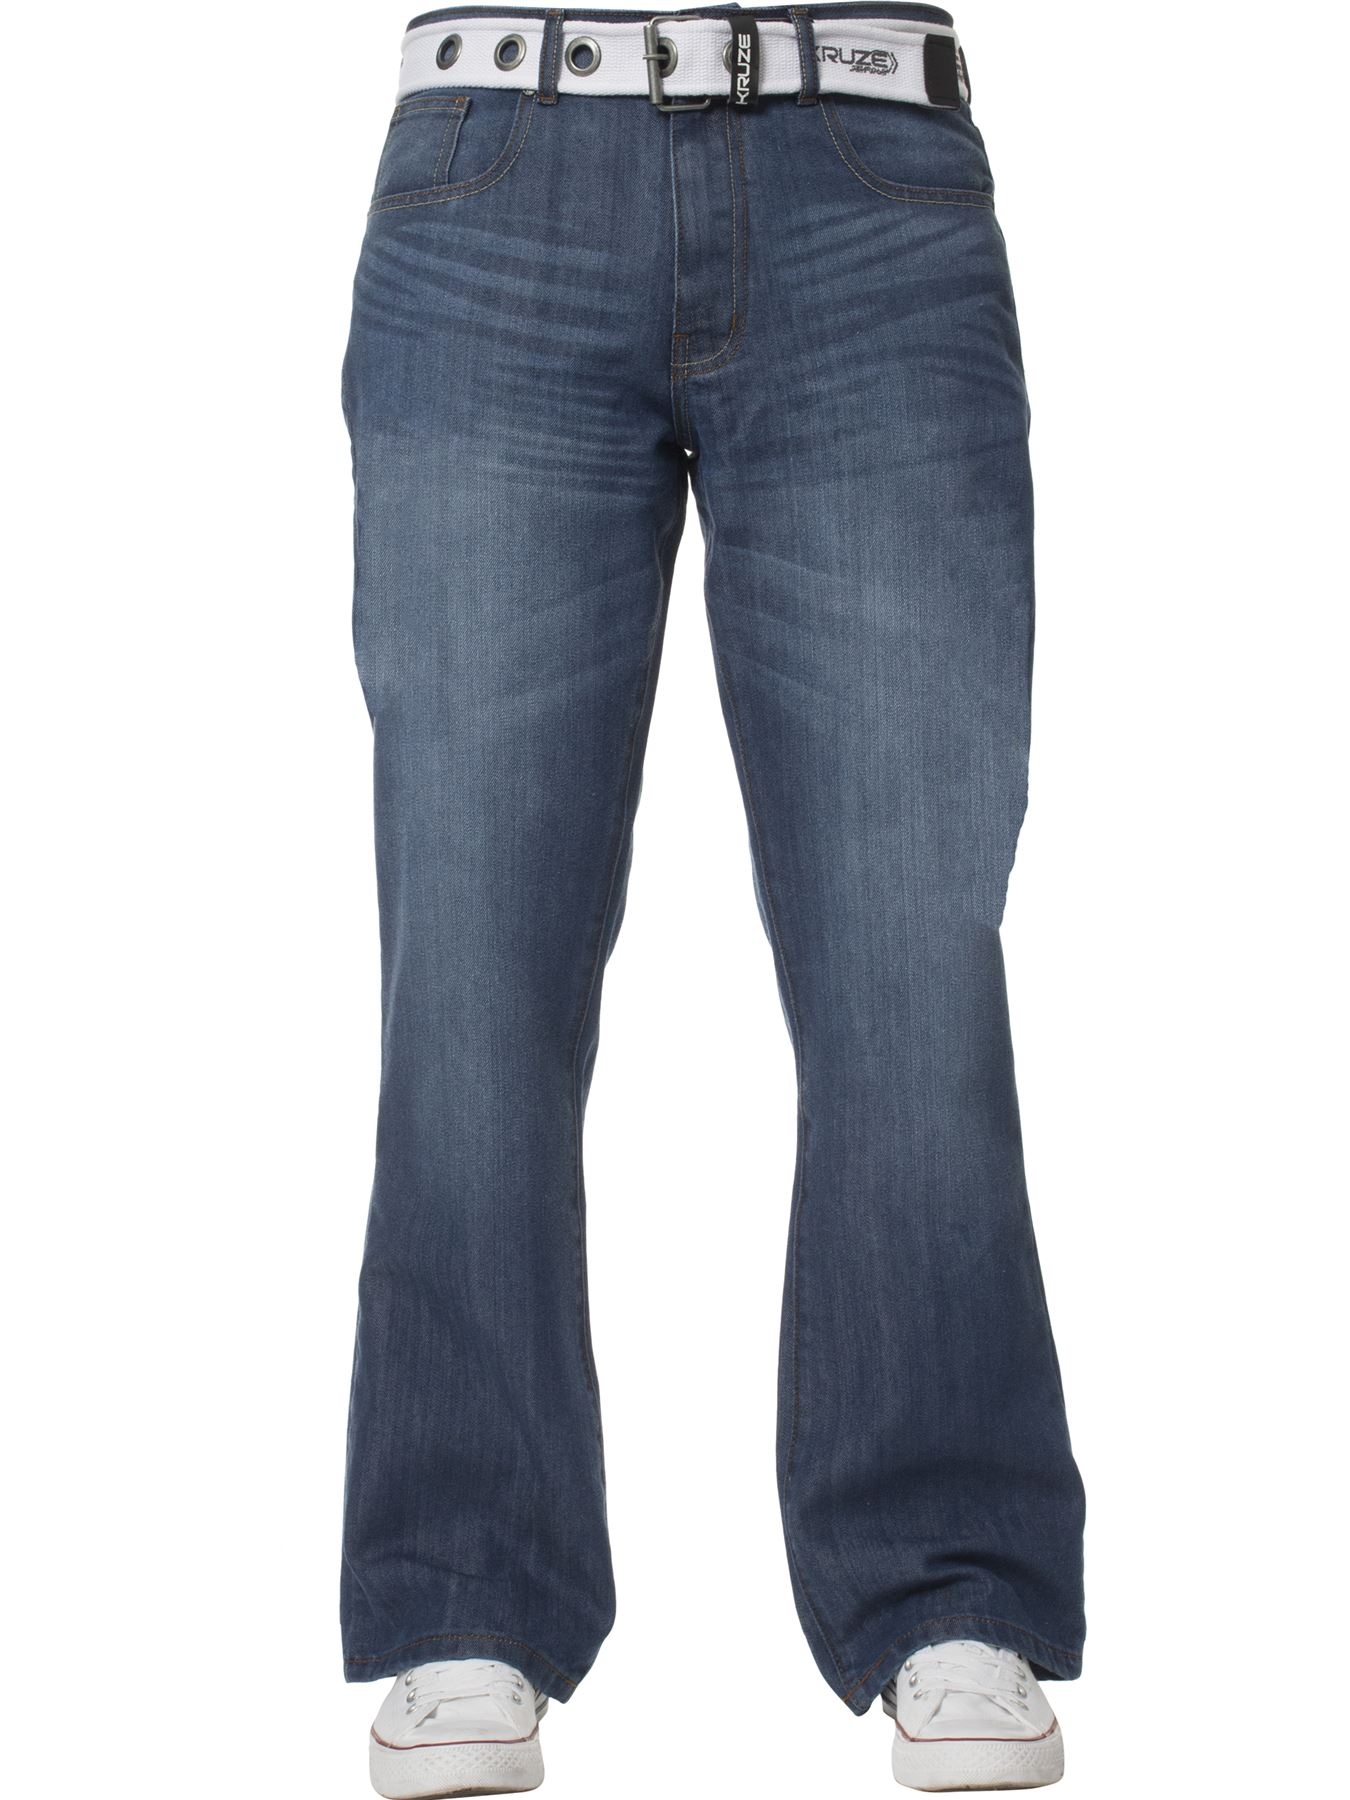 Kruze-Denim-New-Mens-Bootcut-Jeans-Wide-Leg-Flare-Pants-King-Big-All-Waist-Sizes thumbnail 24